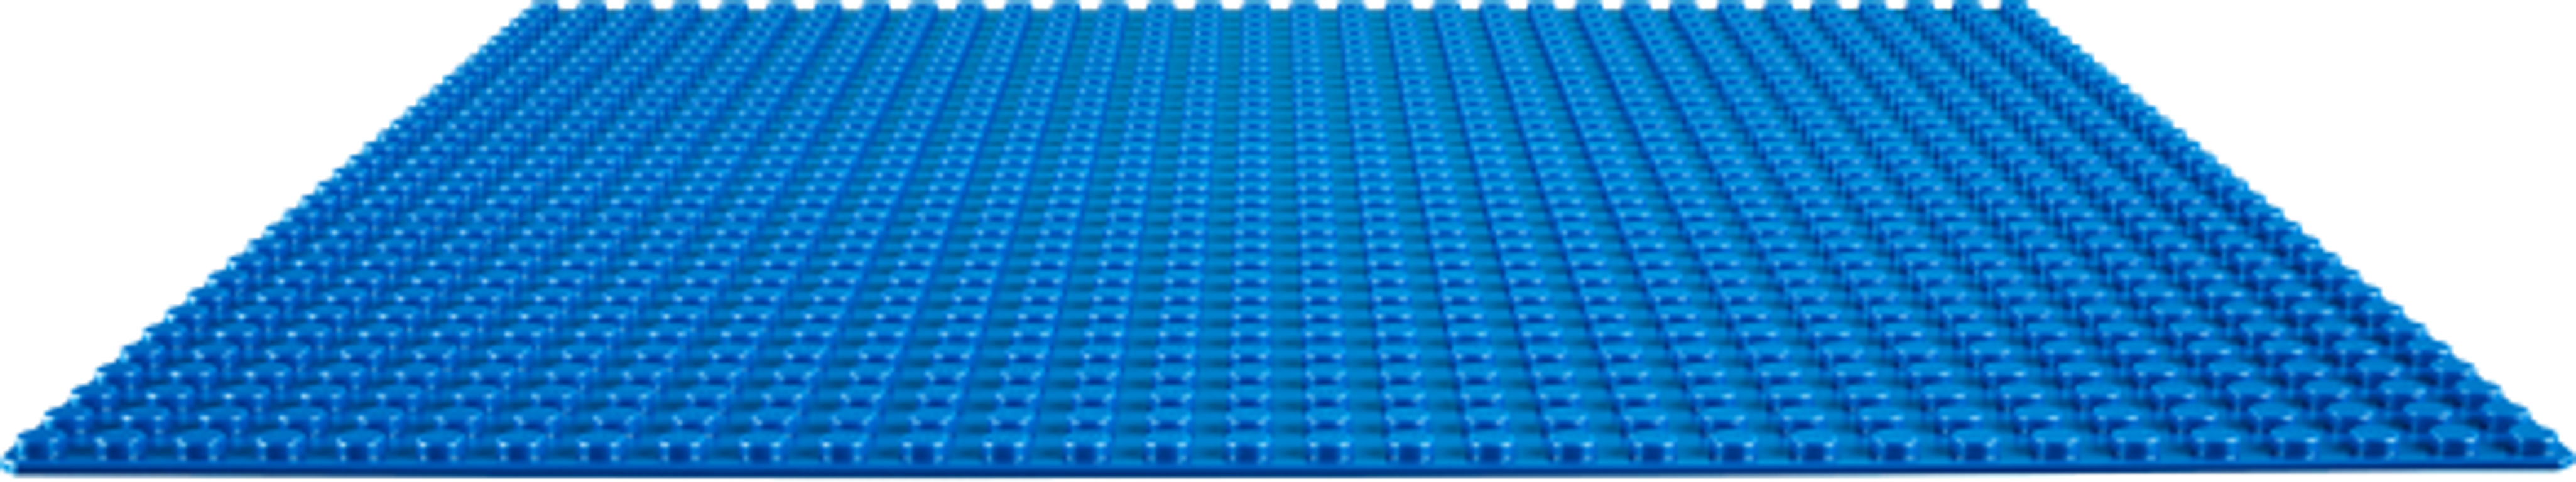 LEGO® Classic Blue Baseplate 32x32 components